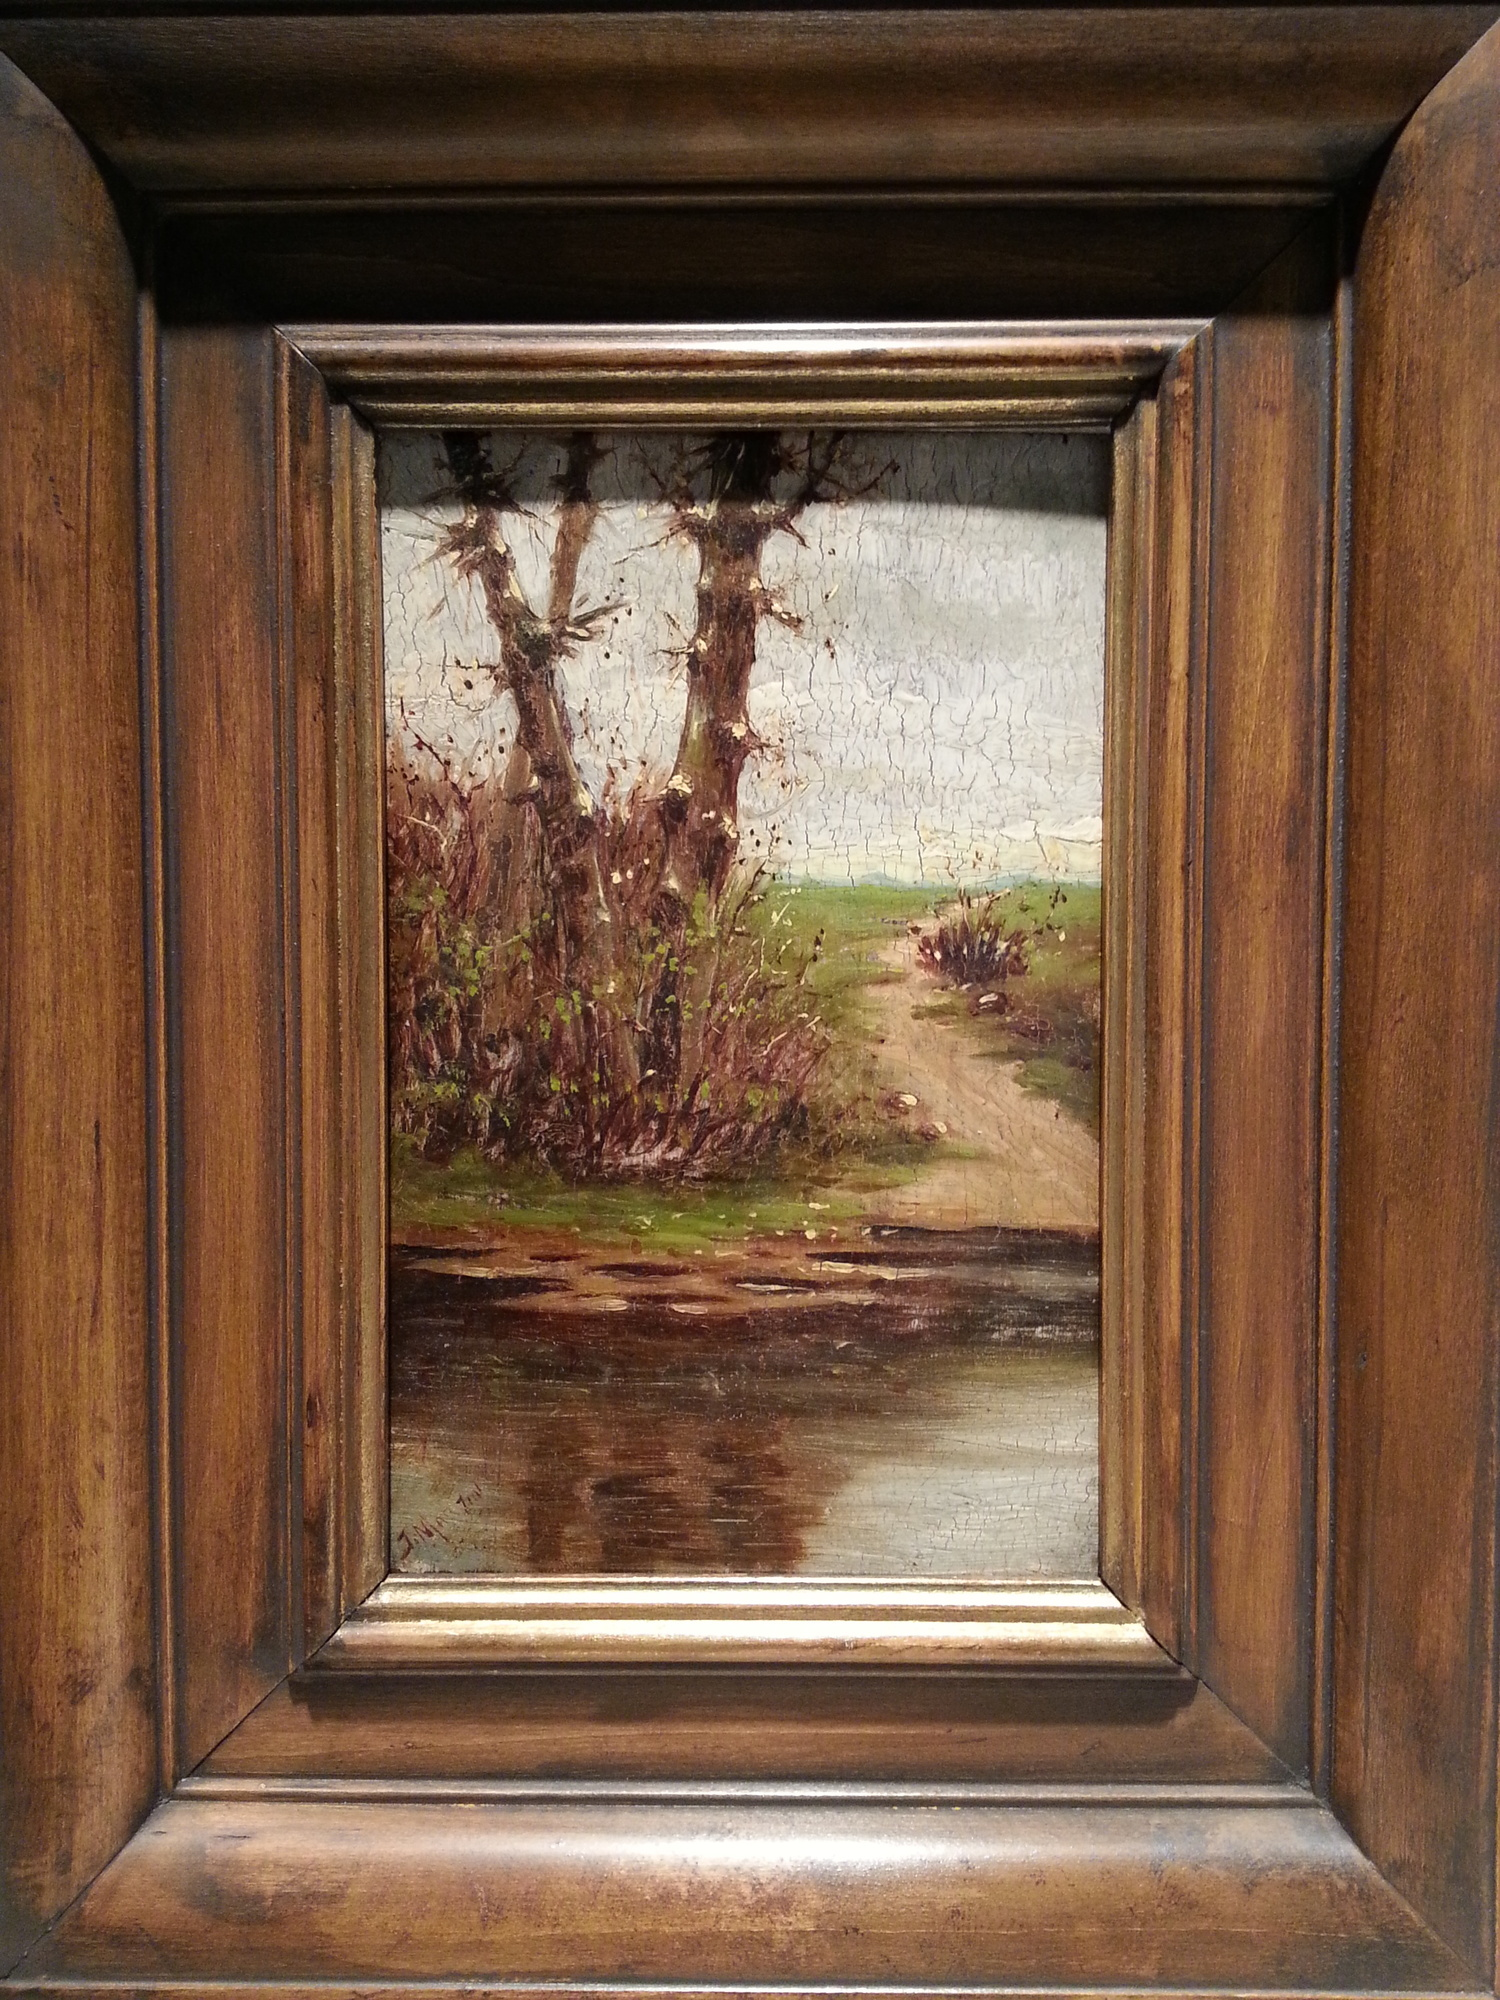 Antique Painting on Cuban Cigar Box Lid / Plasteel Frame    Signed by Untraceable Artist, J. Martin    $1,250 - 30% = $875